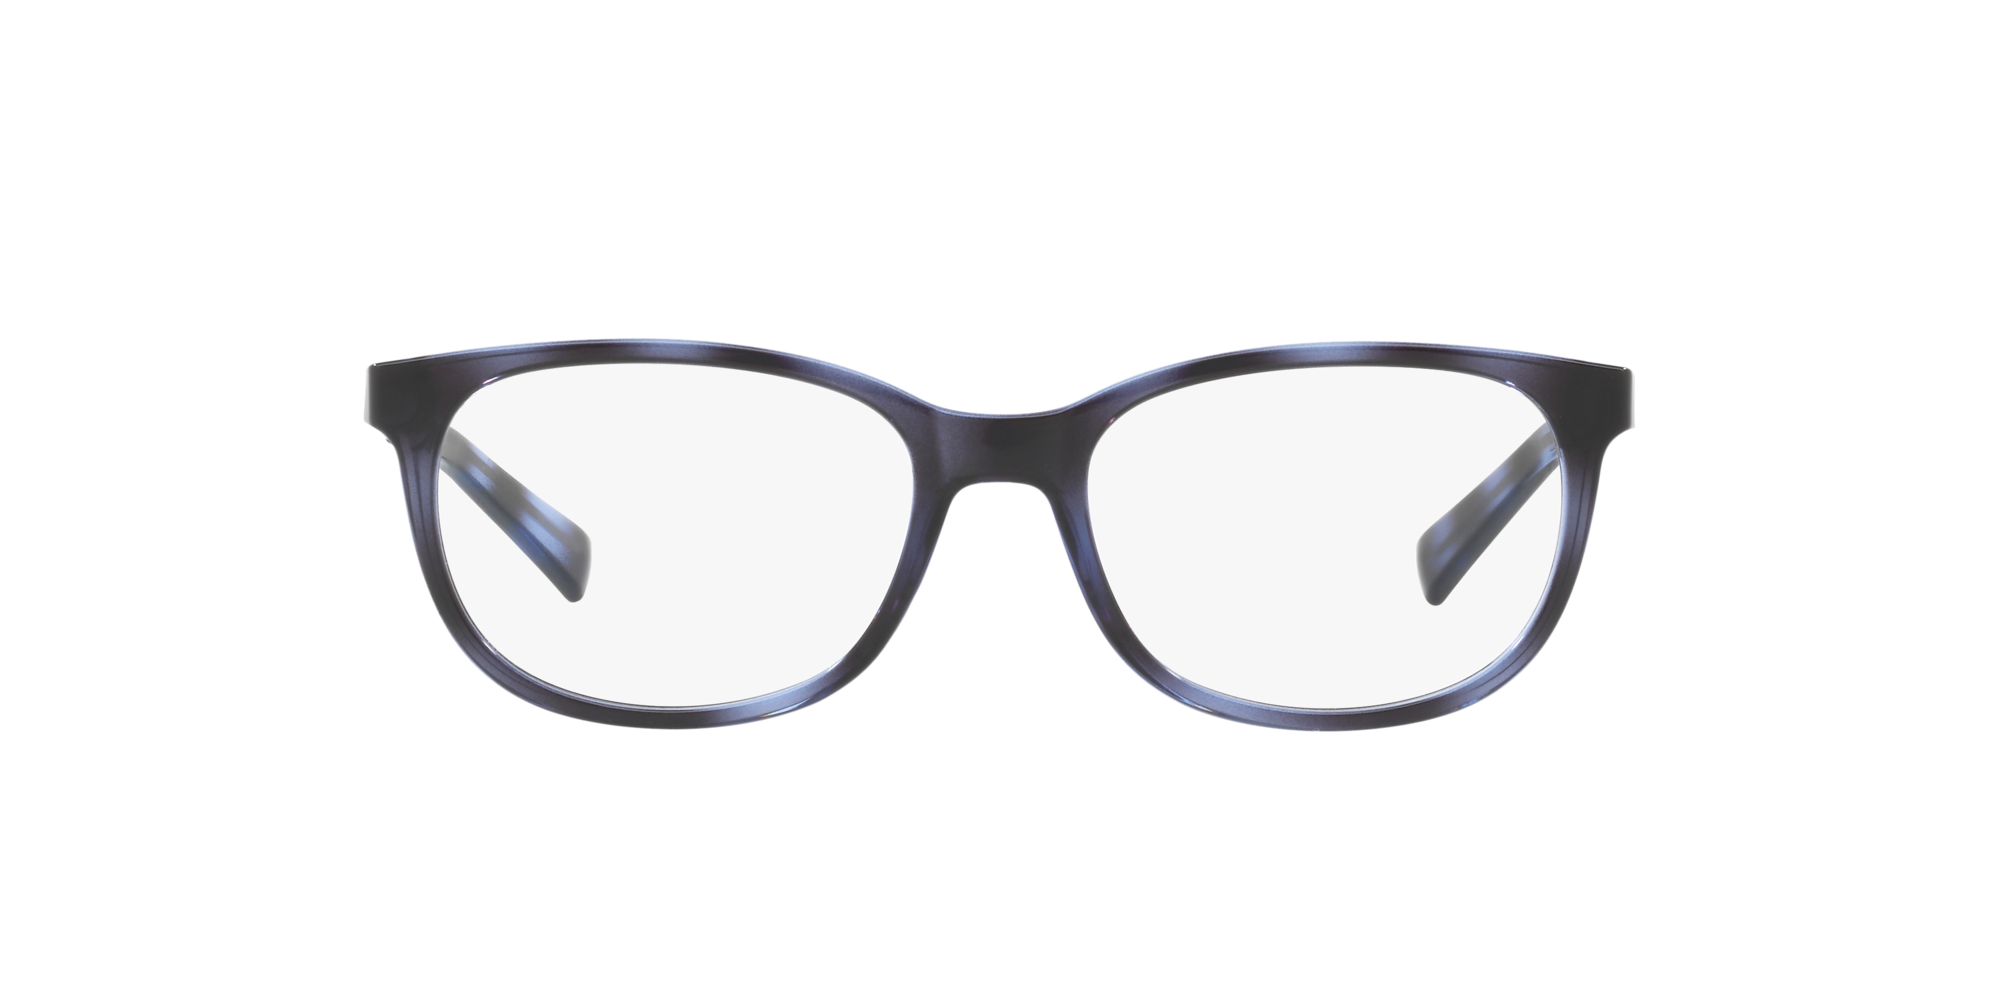 Image for AX3005 from LensCrafters | Glasses, Prescription Glasses Online, Eyewear